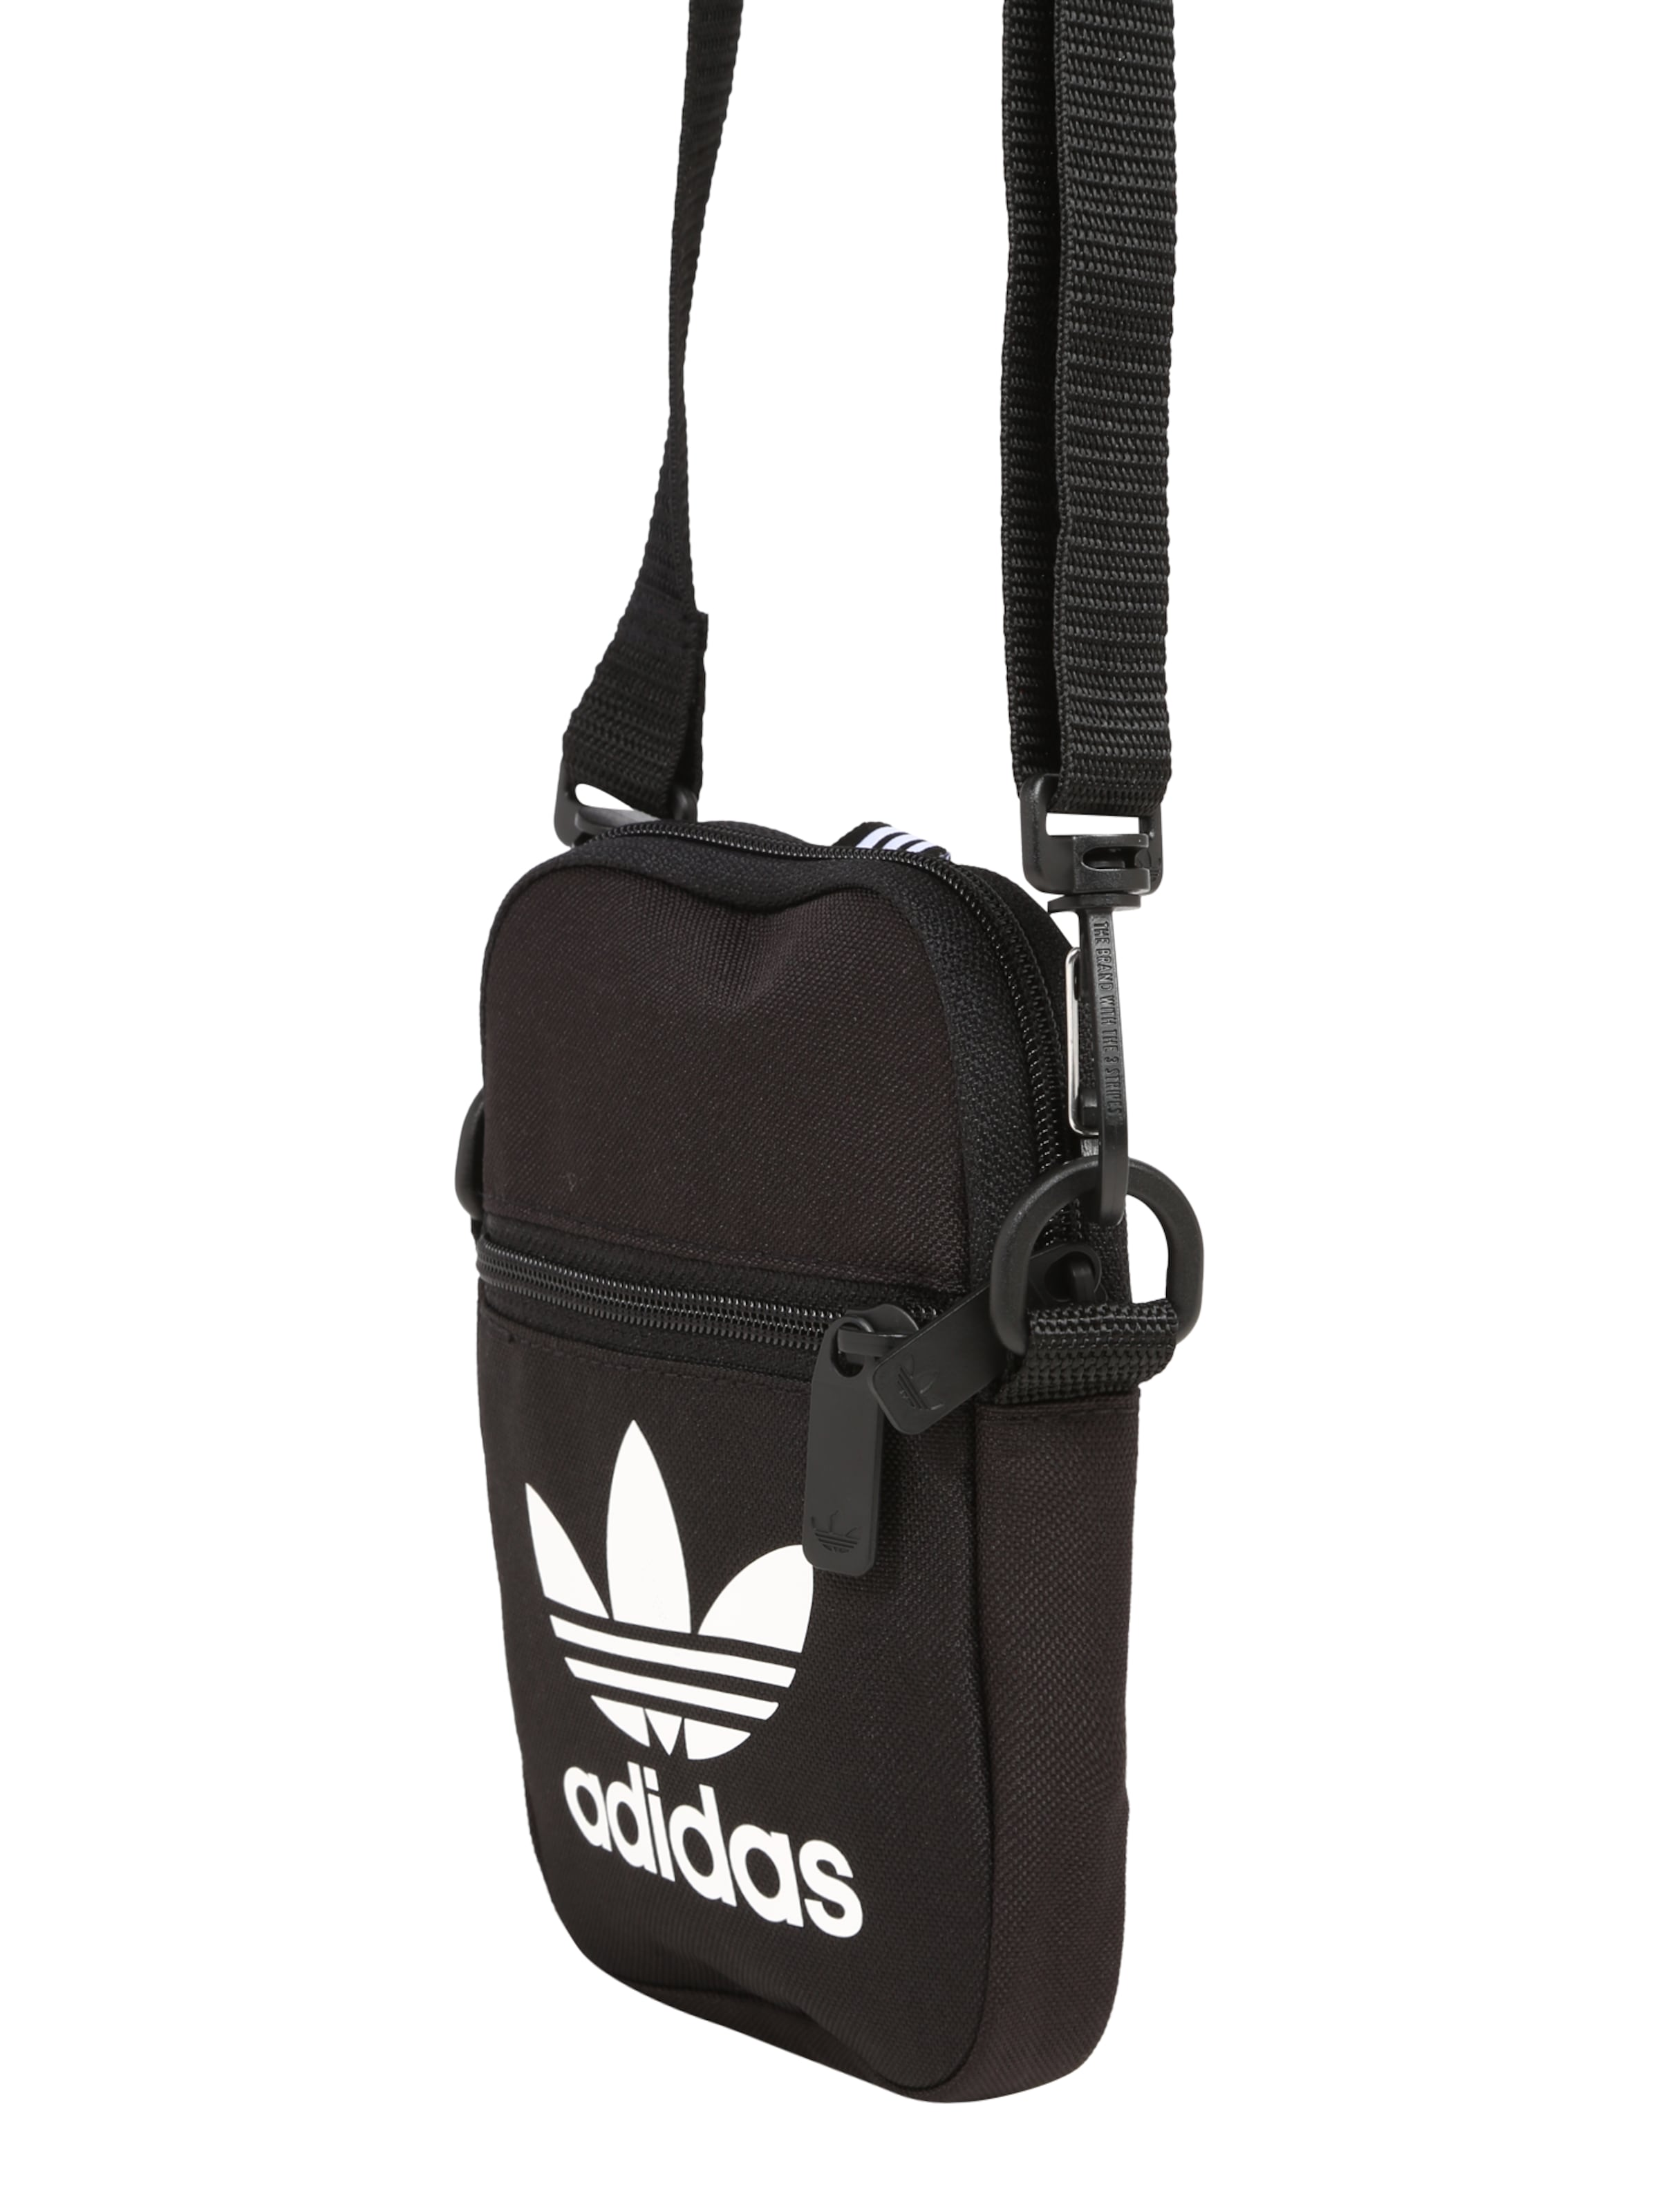 Schoudertas In Zwart Adidas Adidas Originals In Zwart Schoudertas Originals Originals Adidas BorxCed